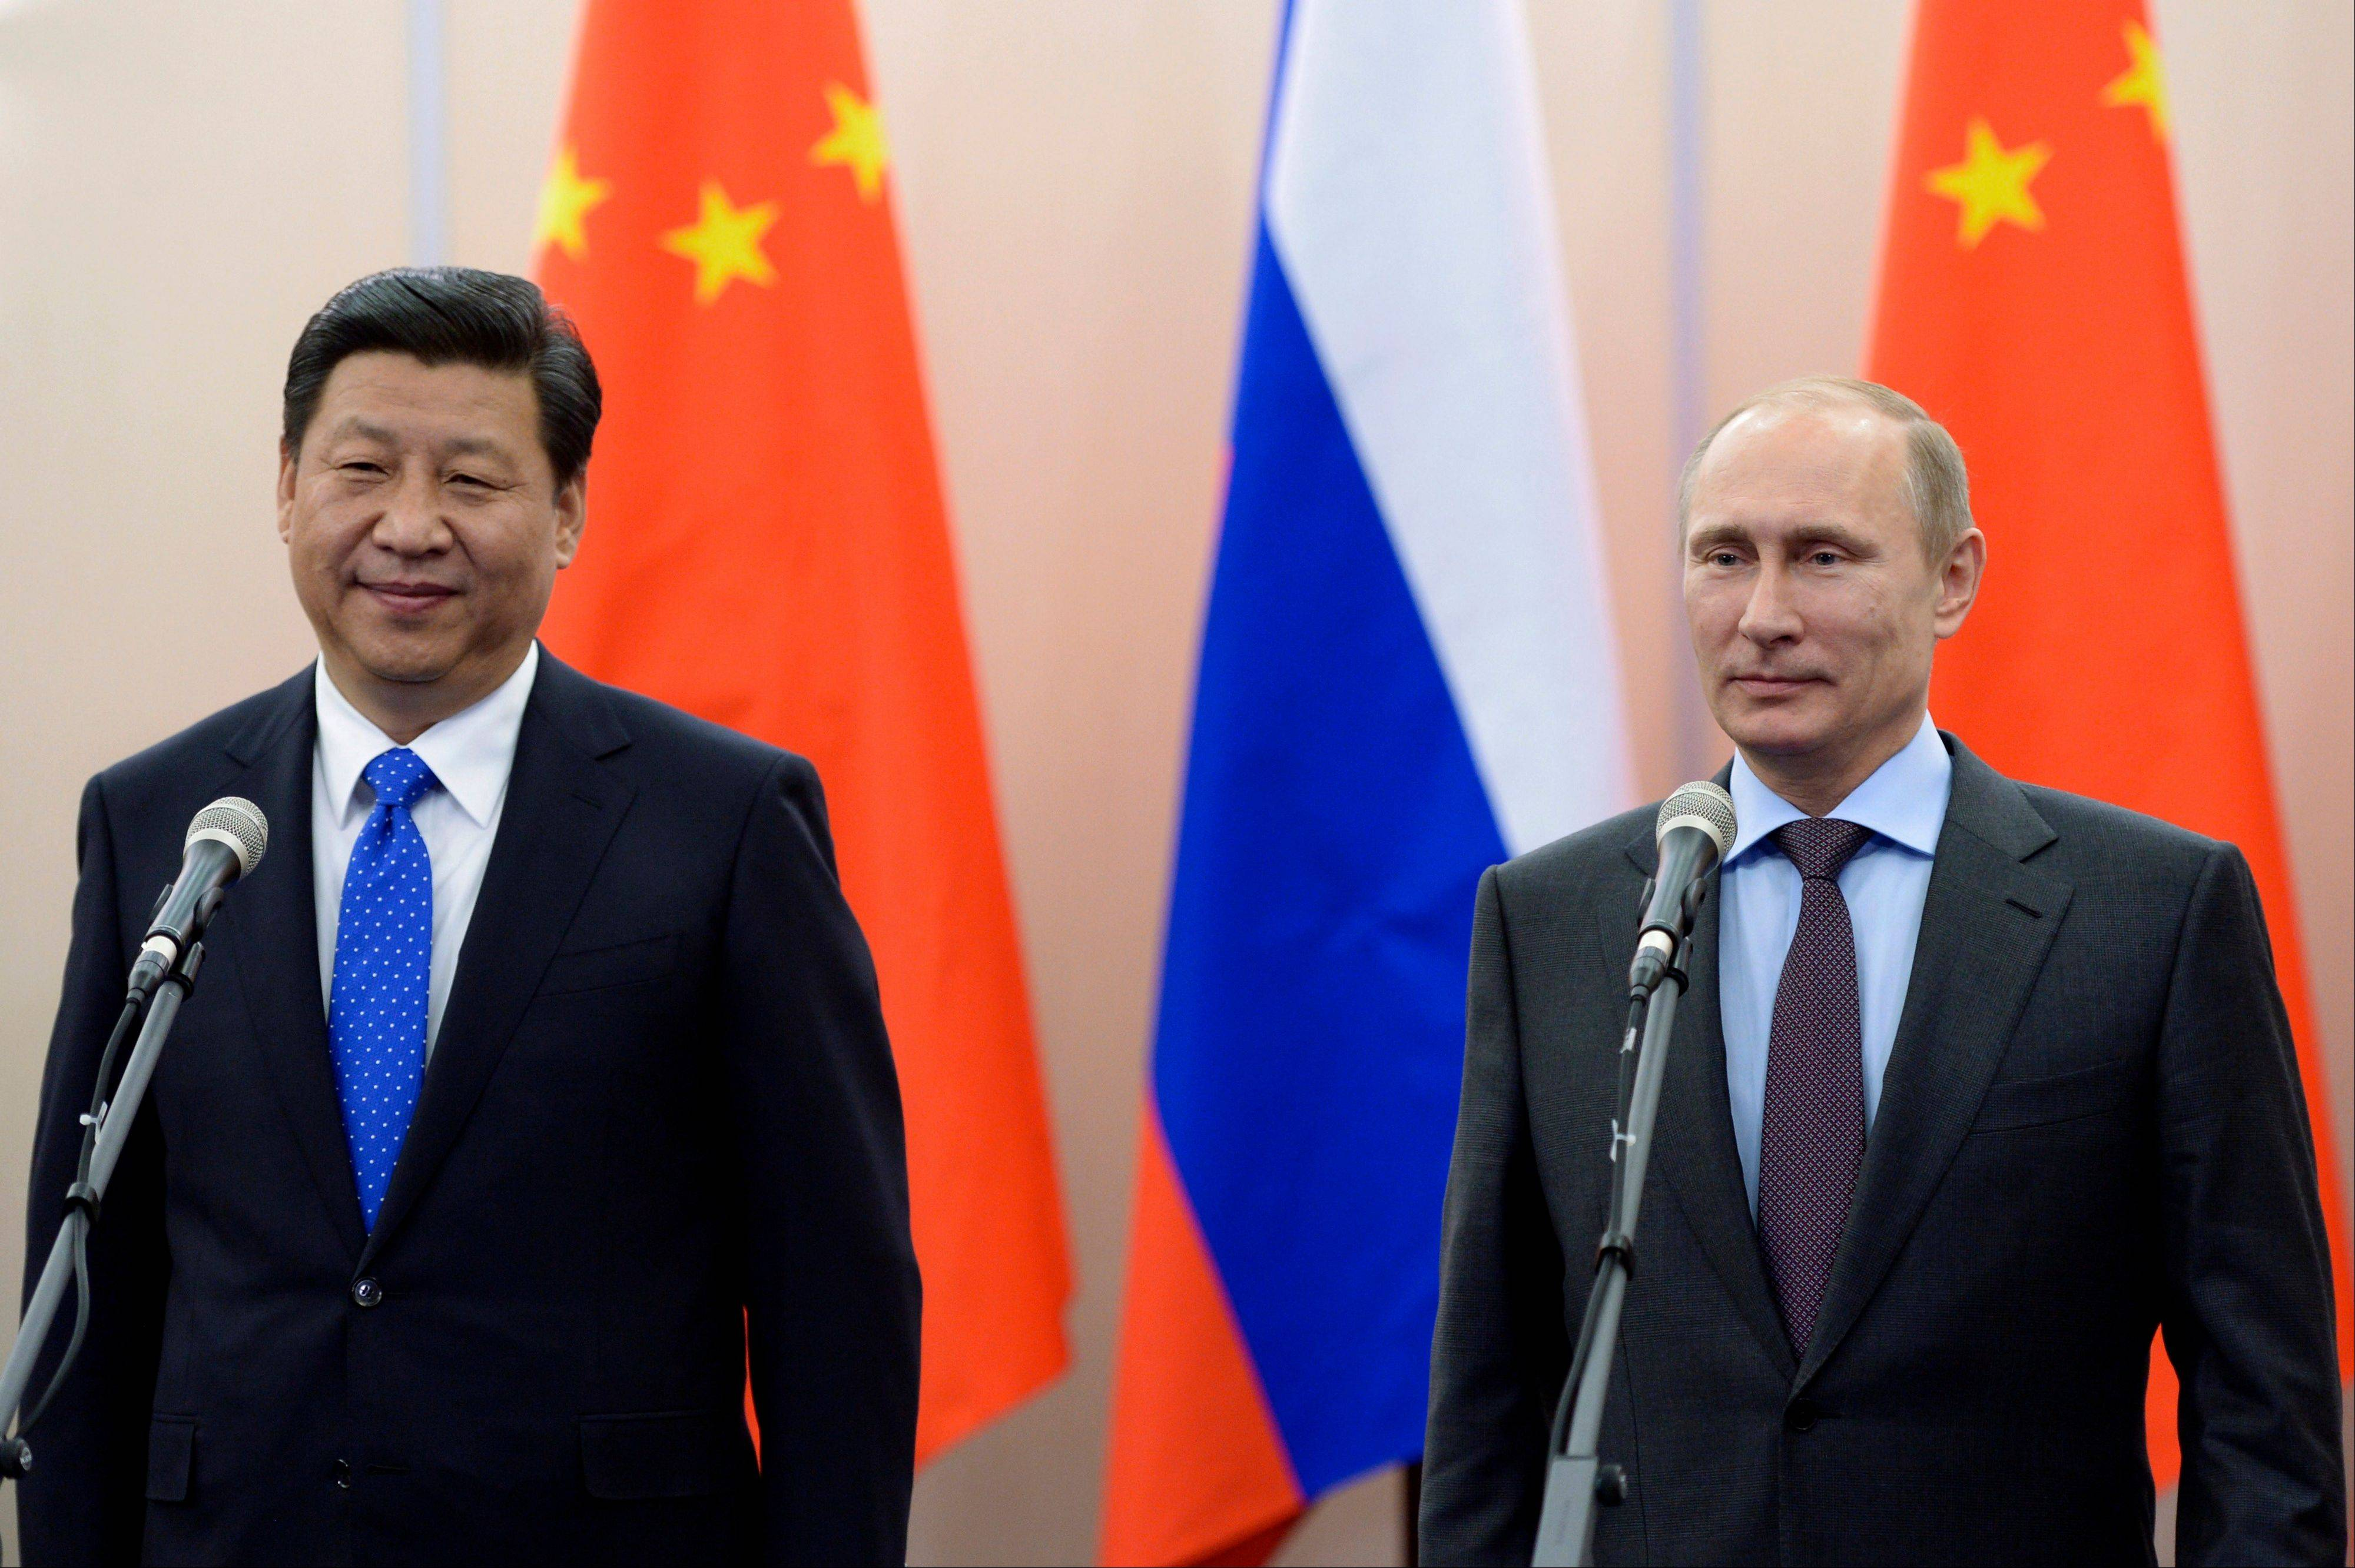 Russian President Vladimir Putin, right, and Chinese President Xi Jinping. Japanese Prime Minister Shinzo Abe and his Chinese counterpart Xi � the leaders of the world�s second and third largest economies � are going to Sochi.